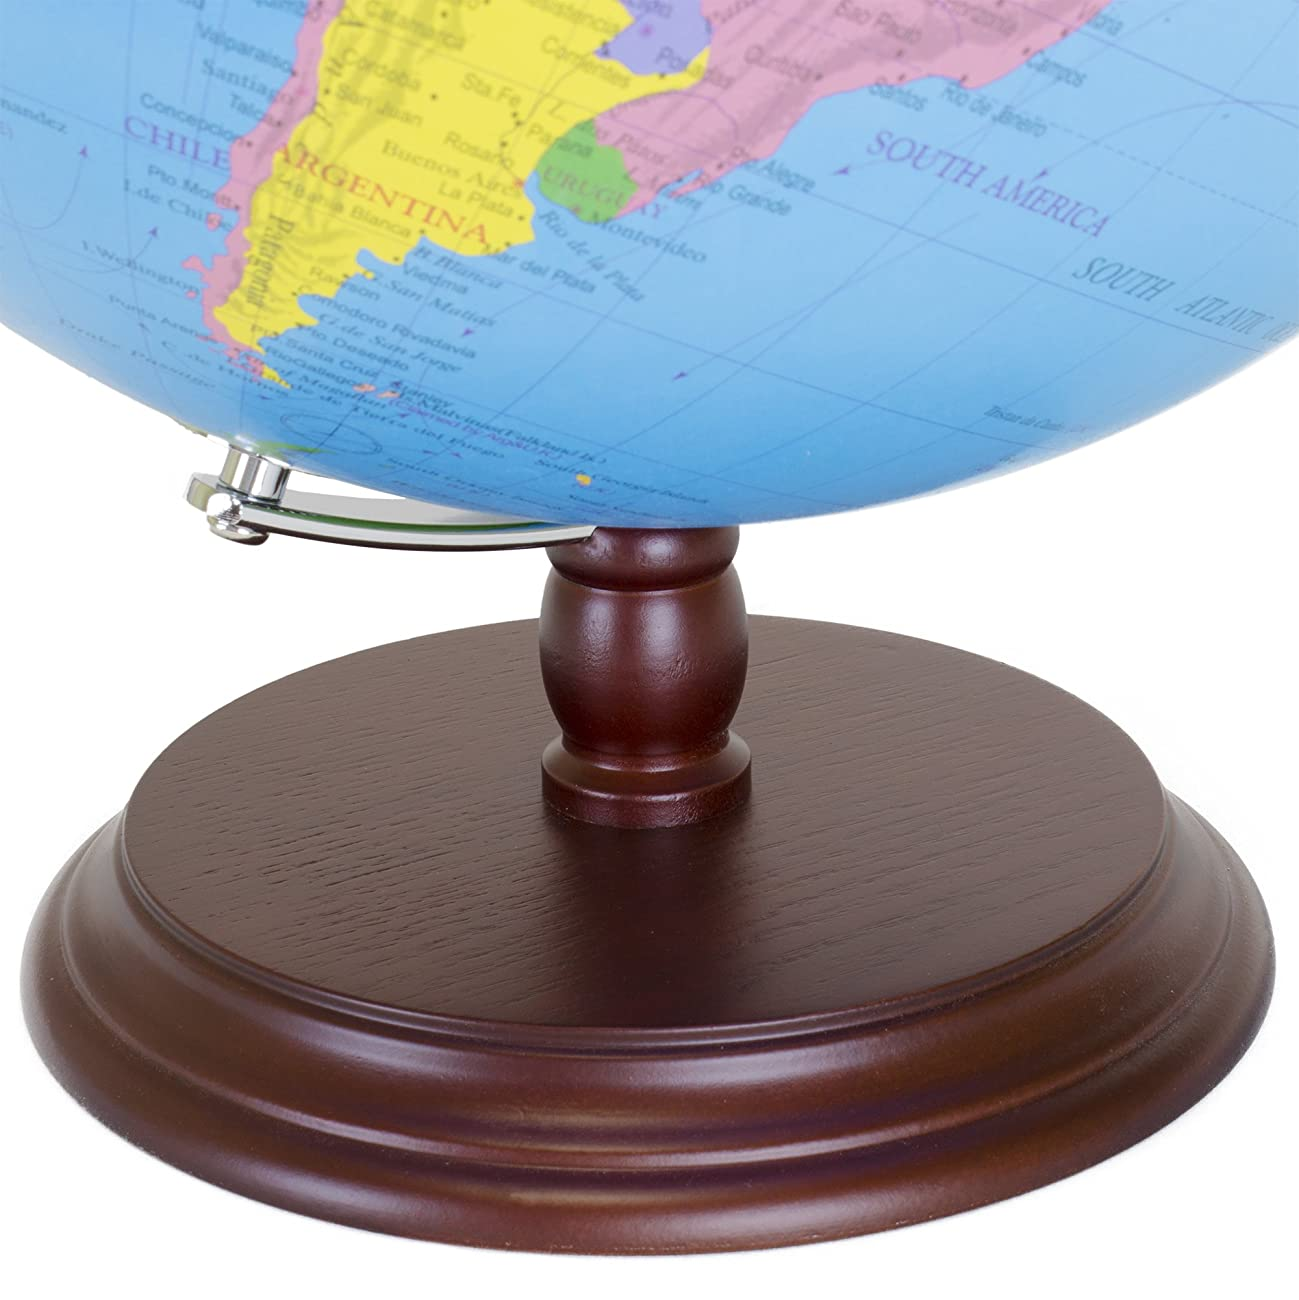 World Globe | 12 Inch Desktop Atlas with Antique Stand | Earth with Political Maps + Blue Oceans for Educational Geography | Classic Globo Vintage Spinning Perfect for Geographical National Kids Toys 2